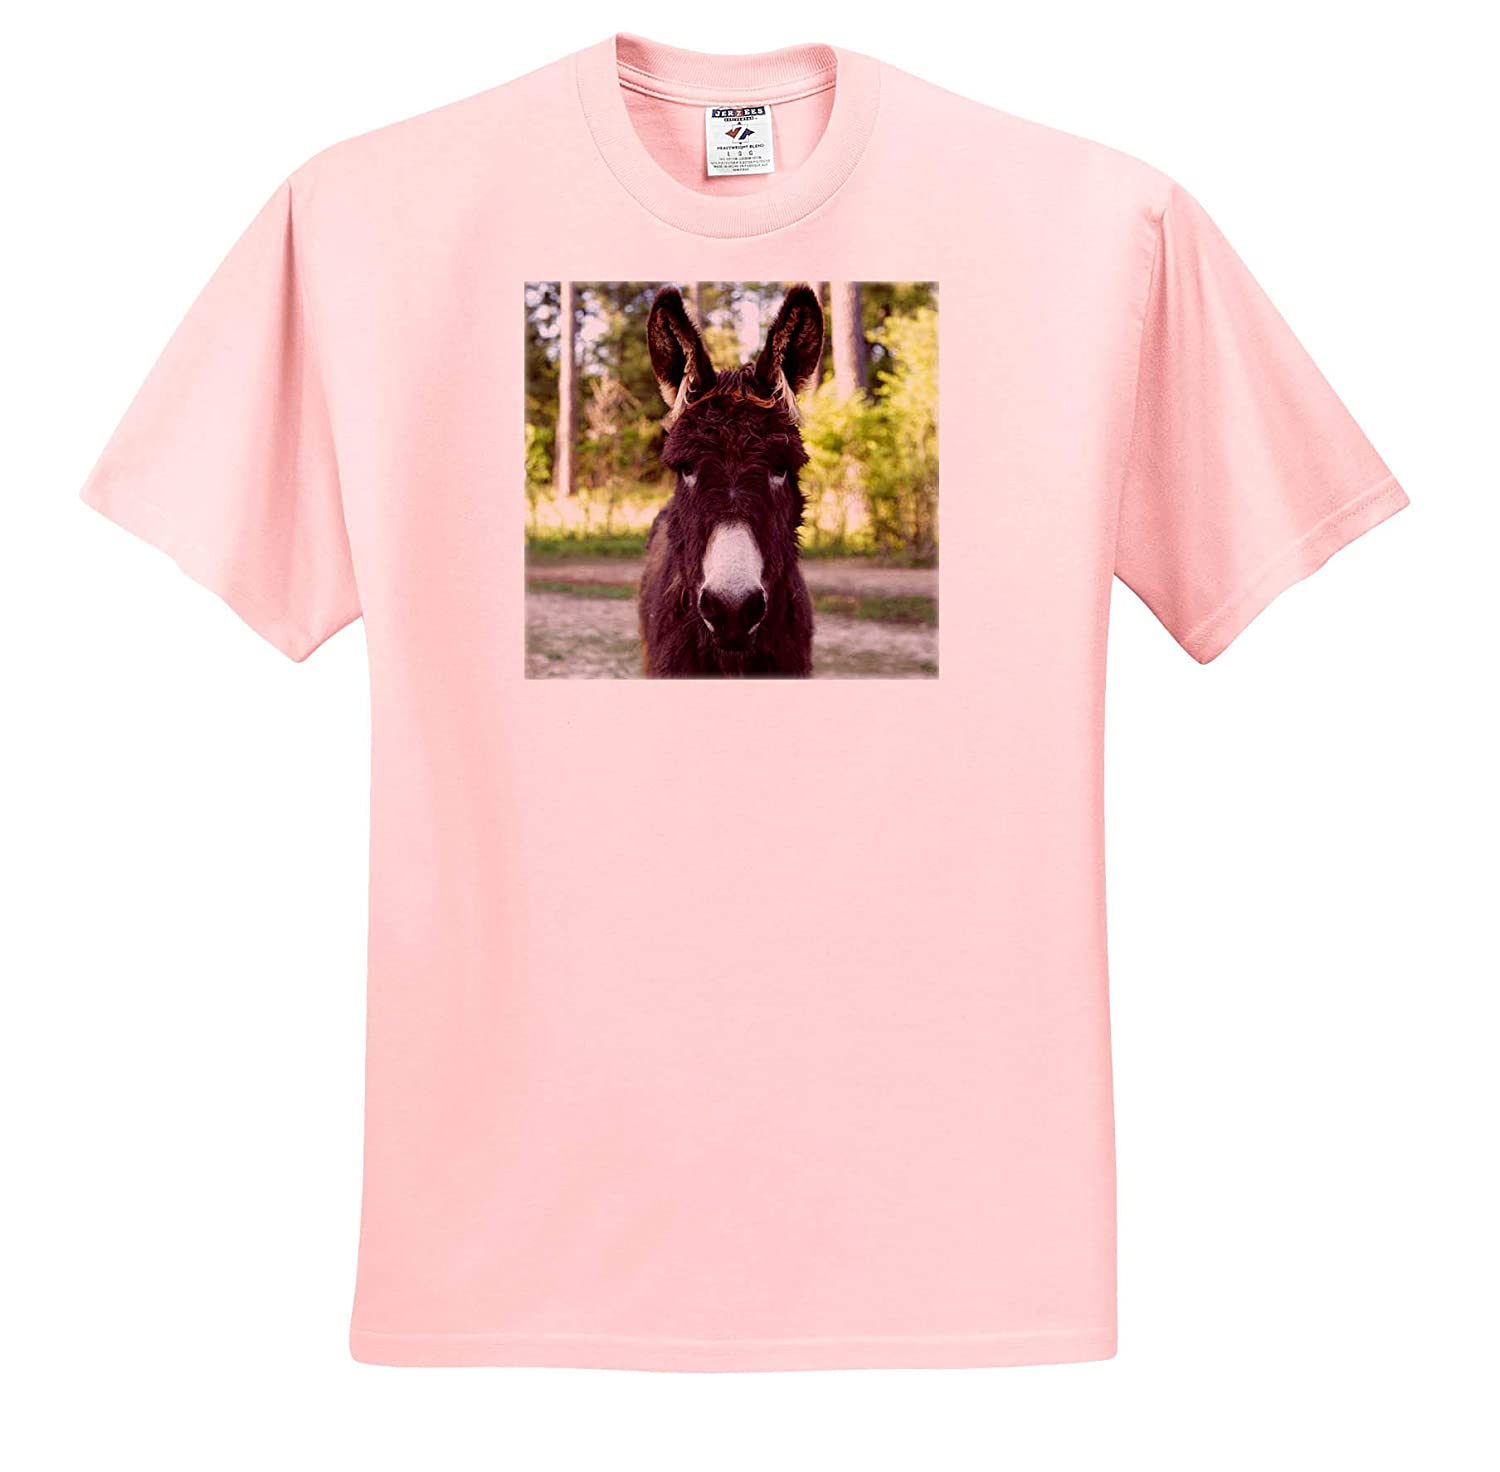 - Adult T-Shirt XL ts/_315562 3dRose Stamp City Photograph of a Fuzzy Baby Donkey on a Farm in South Carolina Animals